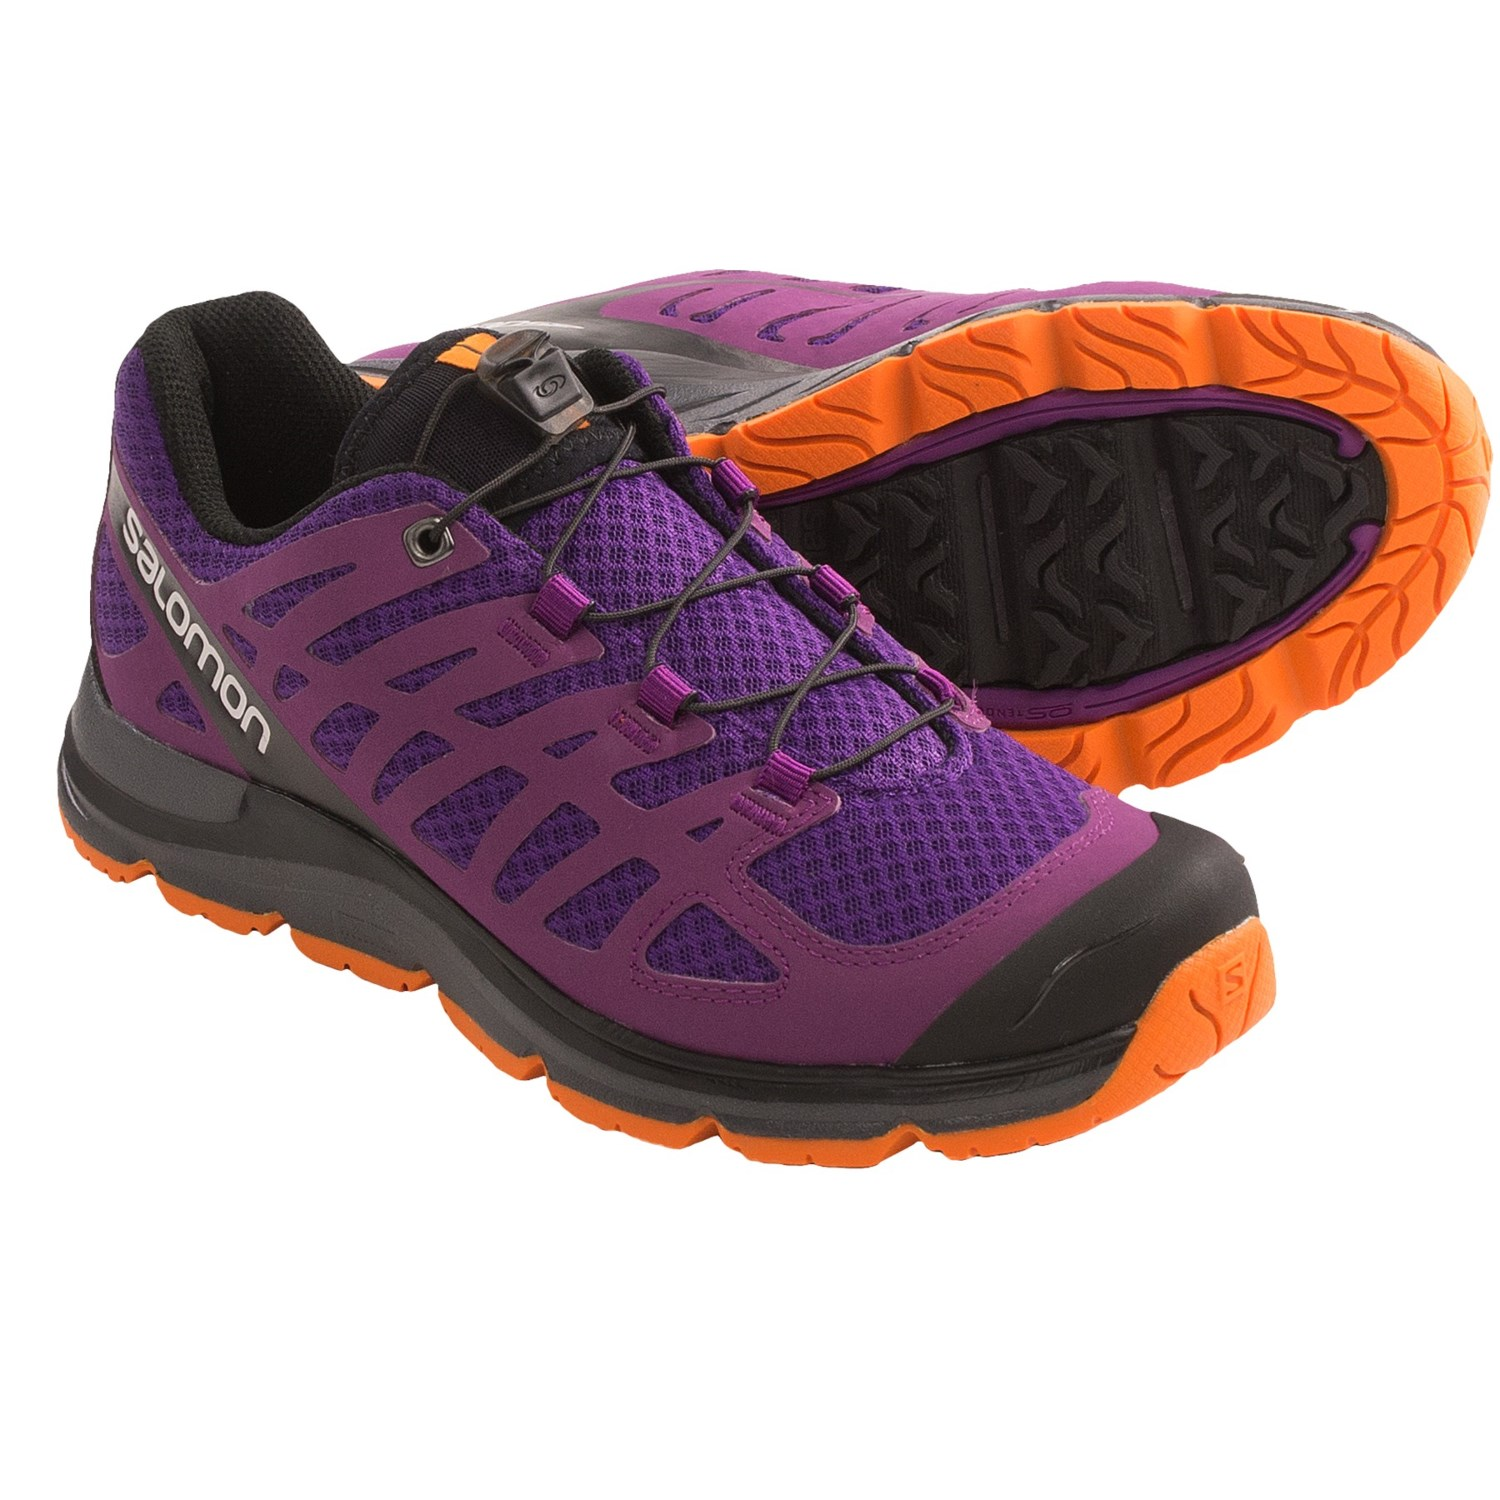 Salomon hiking shoes women   Clothes stores